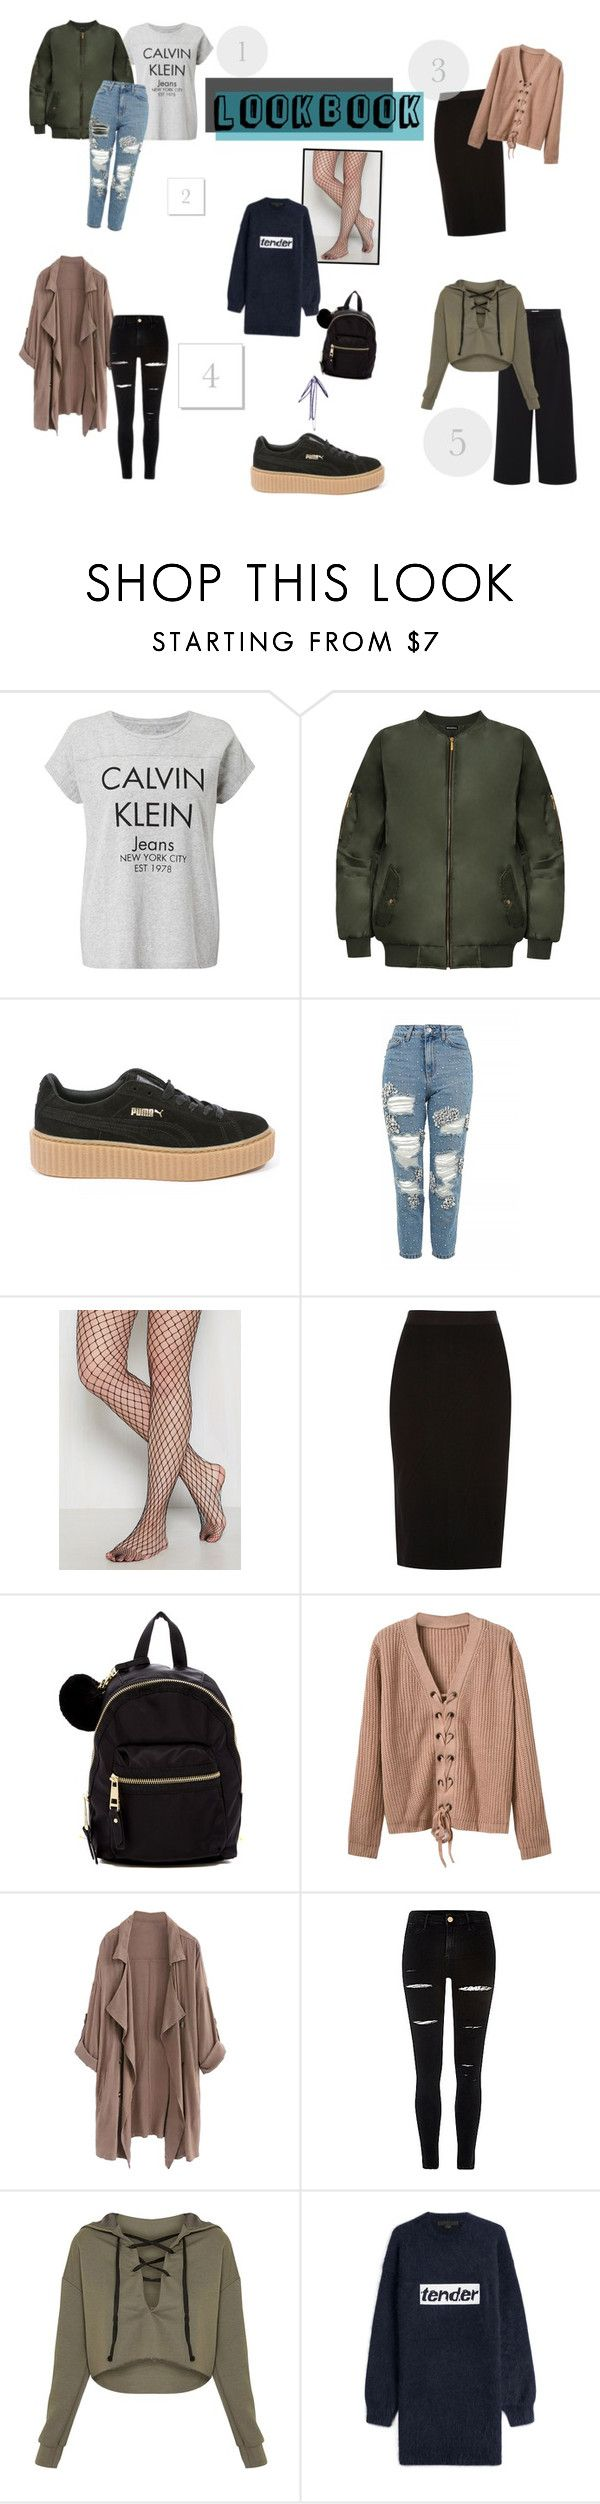 """""""How to dress your platform sneakers: lookbook"""" by trakster ❤ liked on Polyvore featuring Calvin Klein, WearAll, Puma, Topshop, River Island, Madden Girl, WithChic and Alexander Wang"""